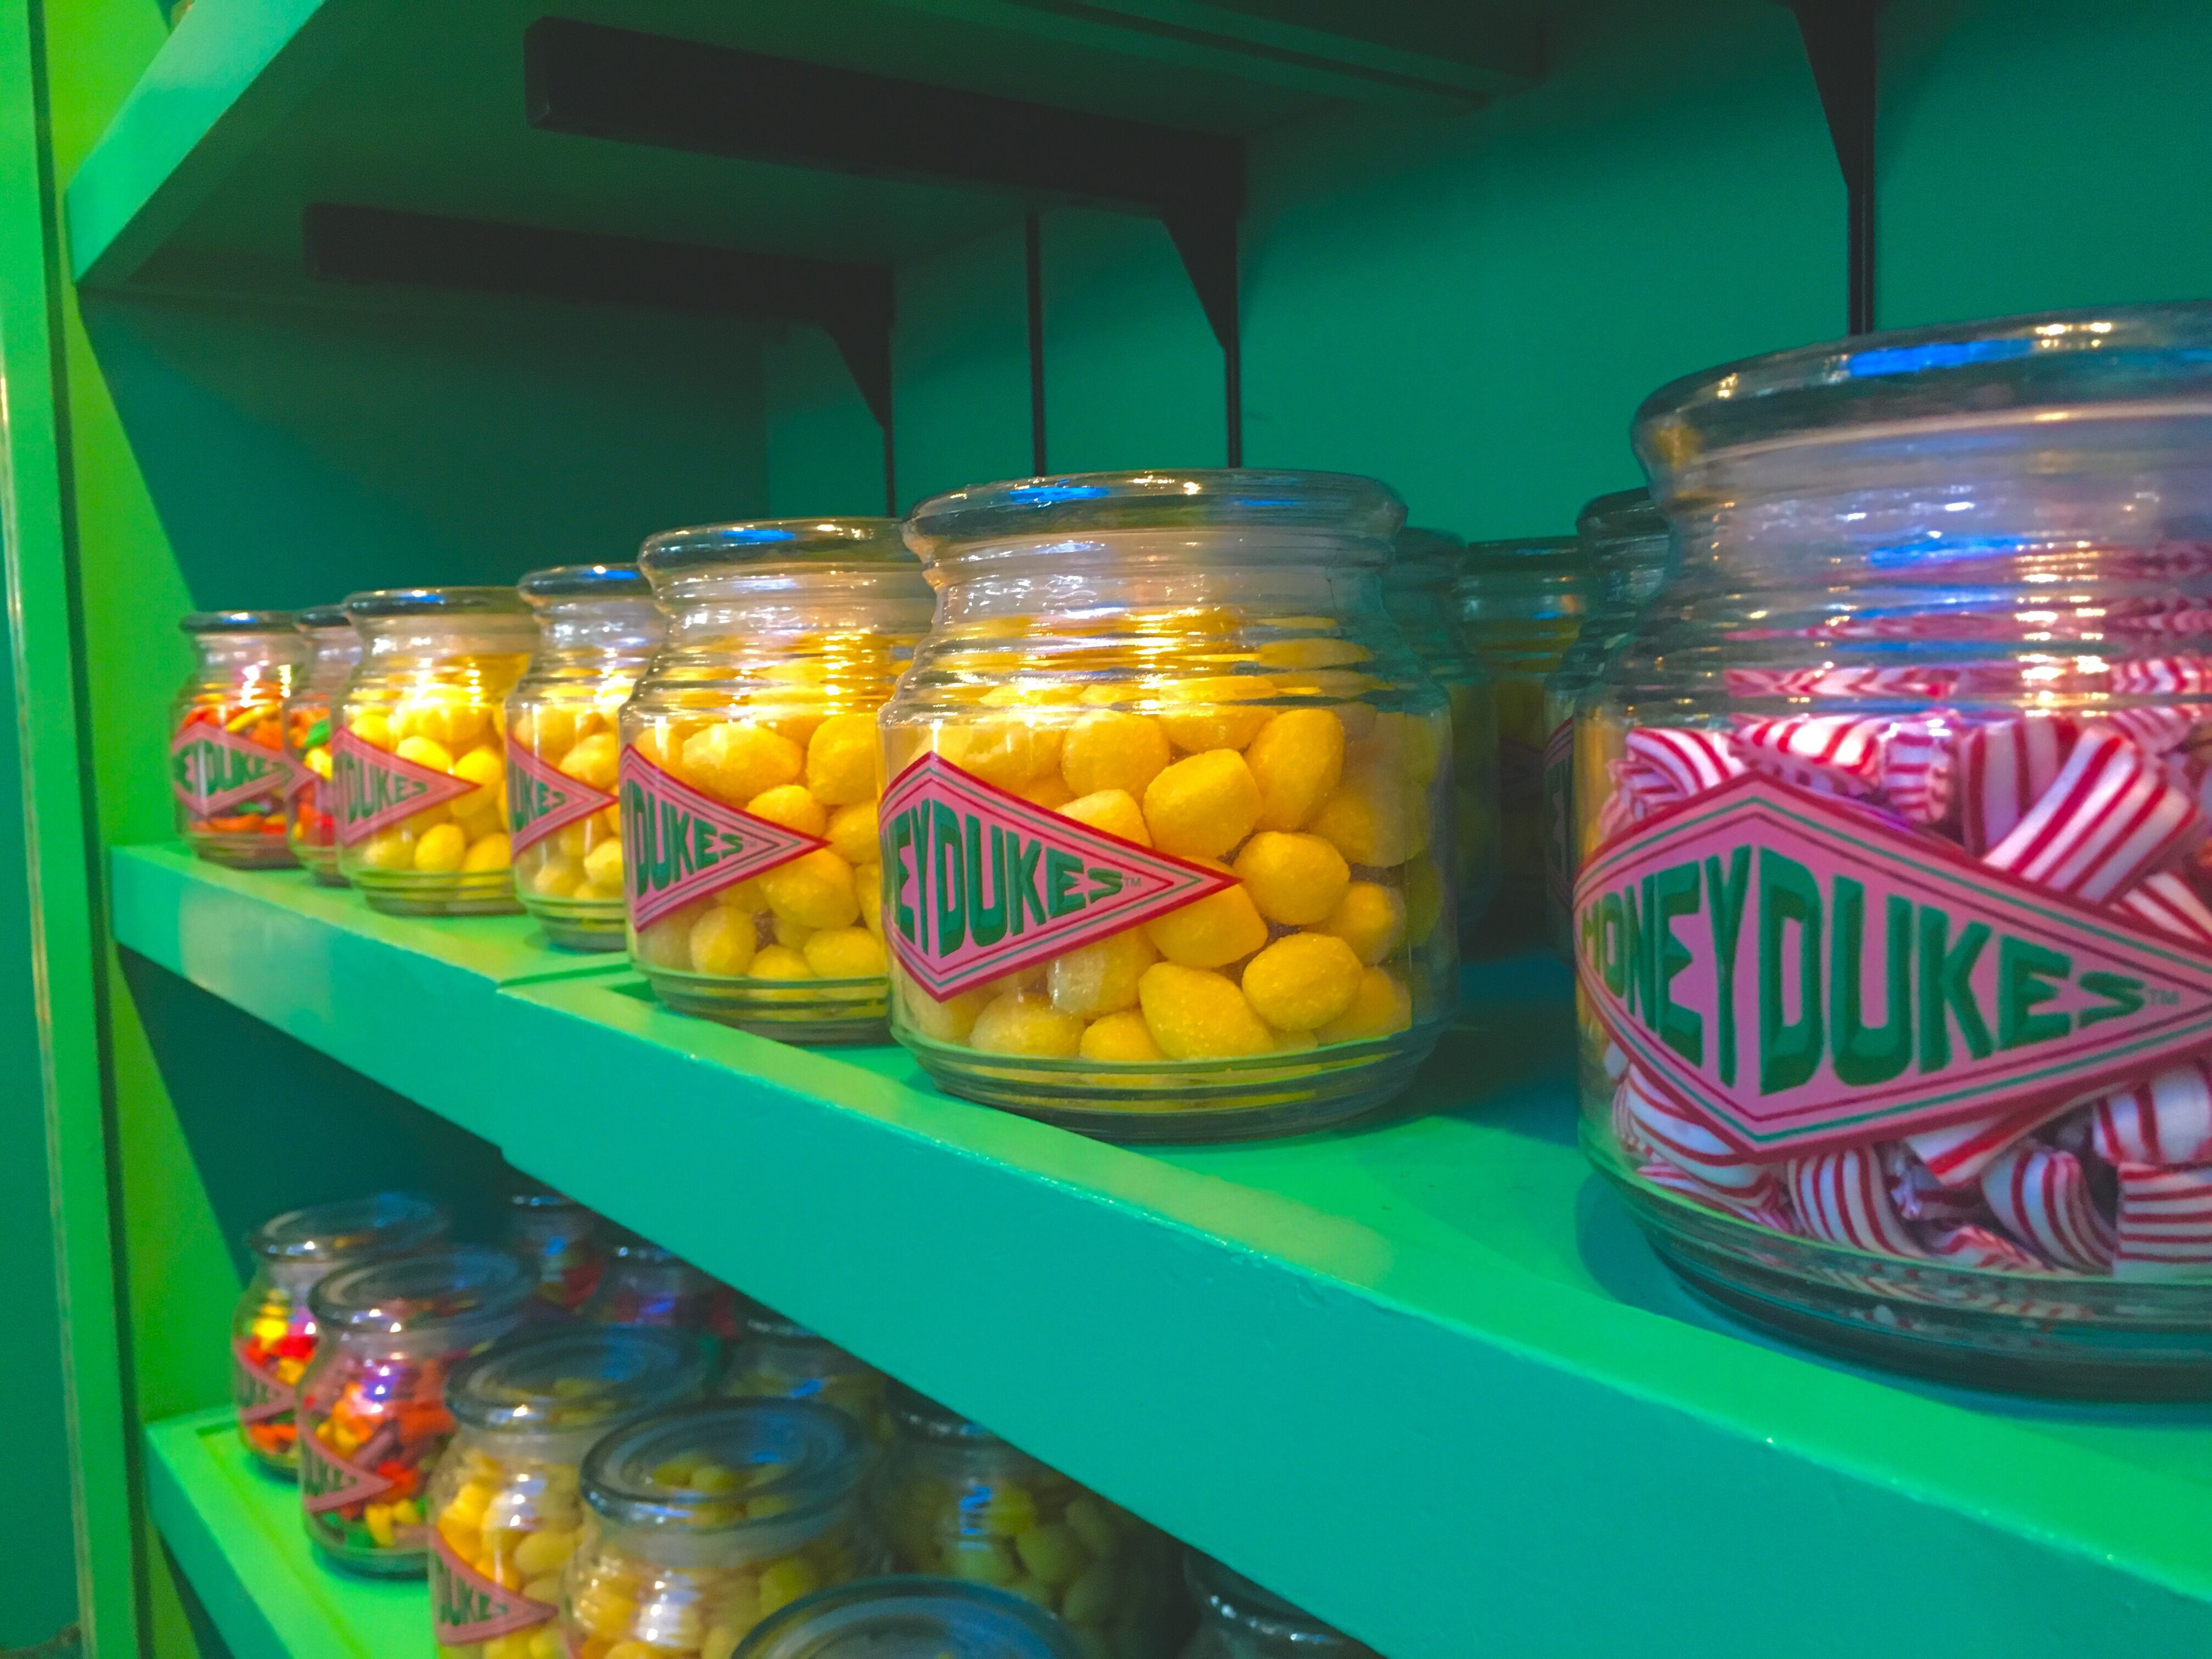 indoors, food and drink, multi colored, store, sweet food, jar, no people, choice, unhealthy eating, food, freshness, day